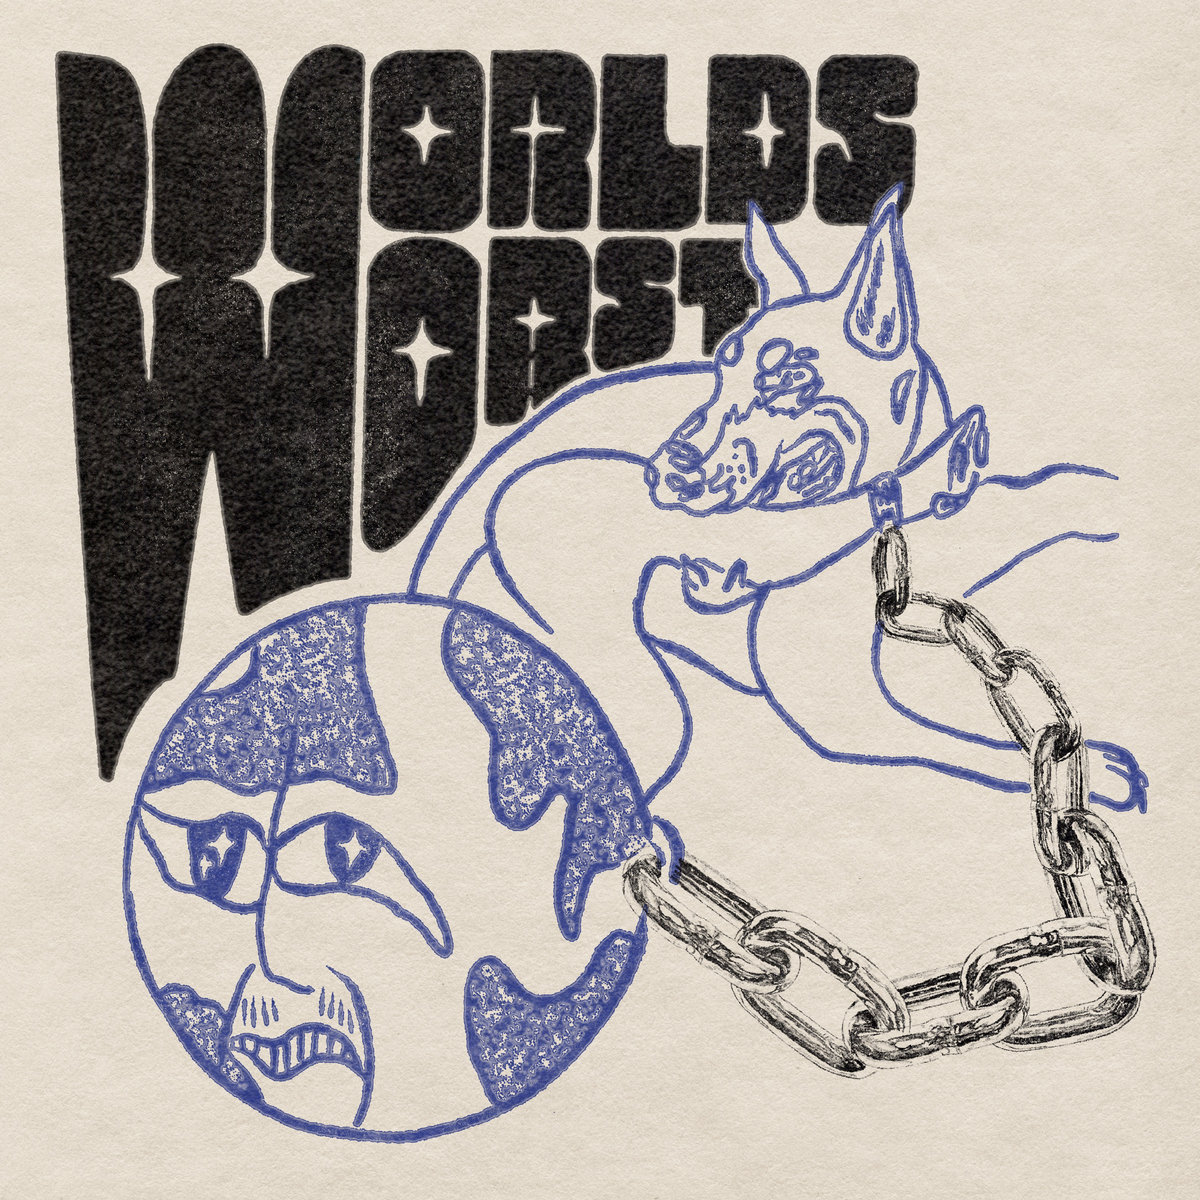 Worlds Worst | EP | Self-Released